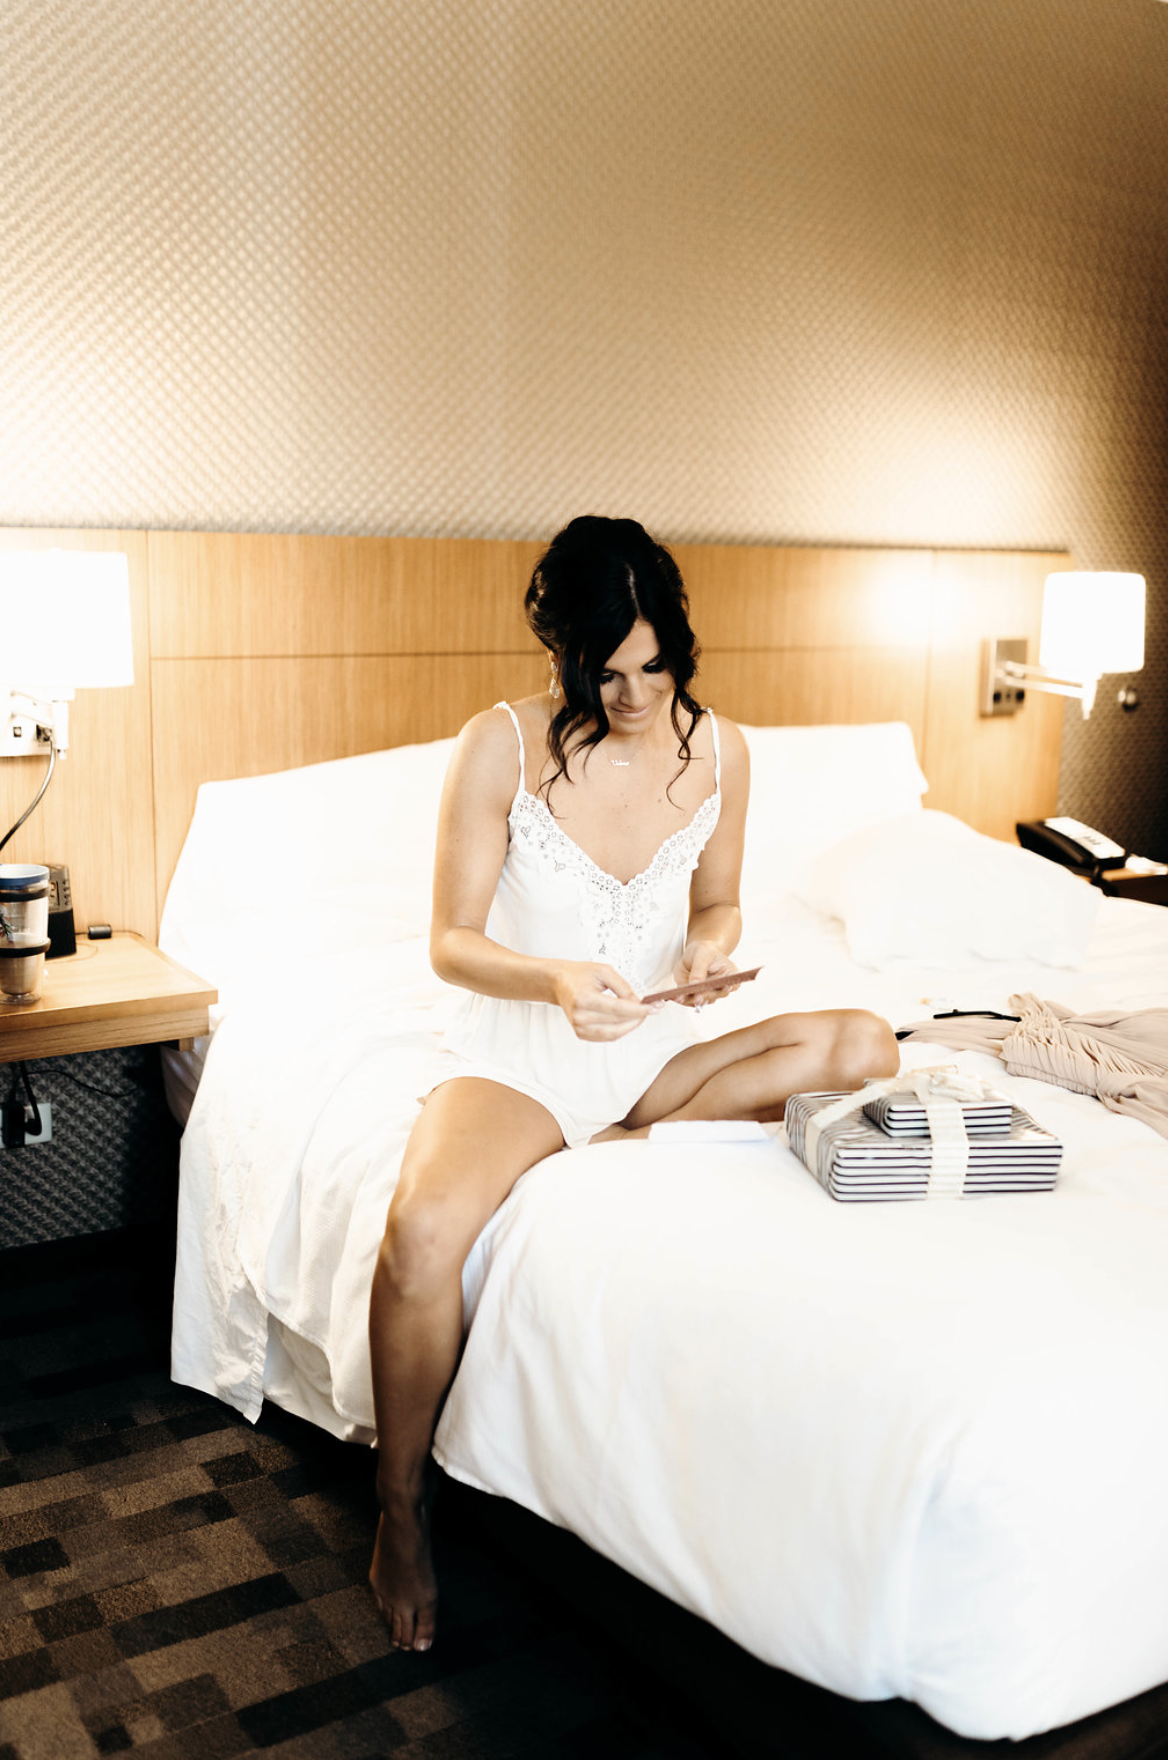 Valerie-and-TJ-McConnell-Wedding-Coordination-by-Cassandra-Clair-Event-Prep-Pittsburgh-Wedding-6.png